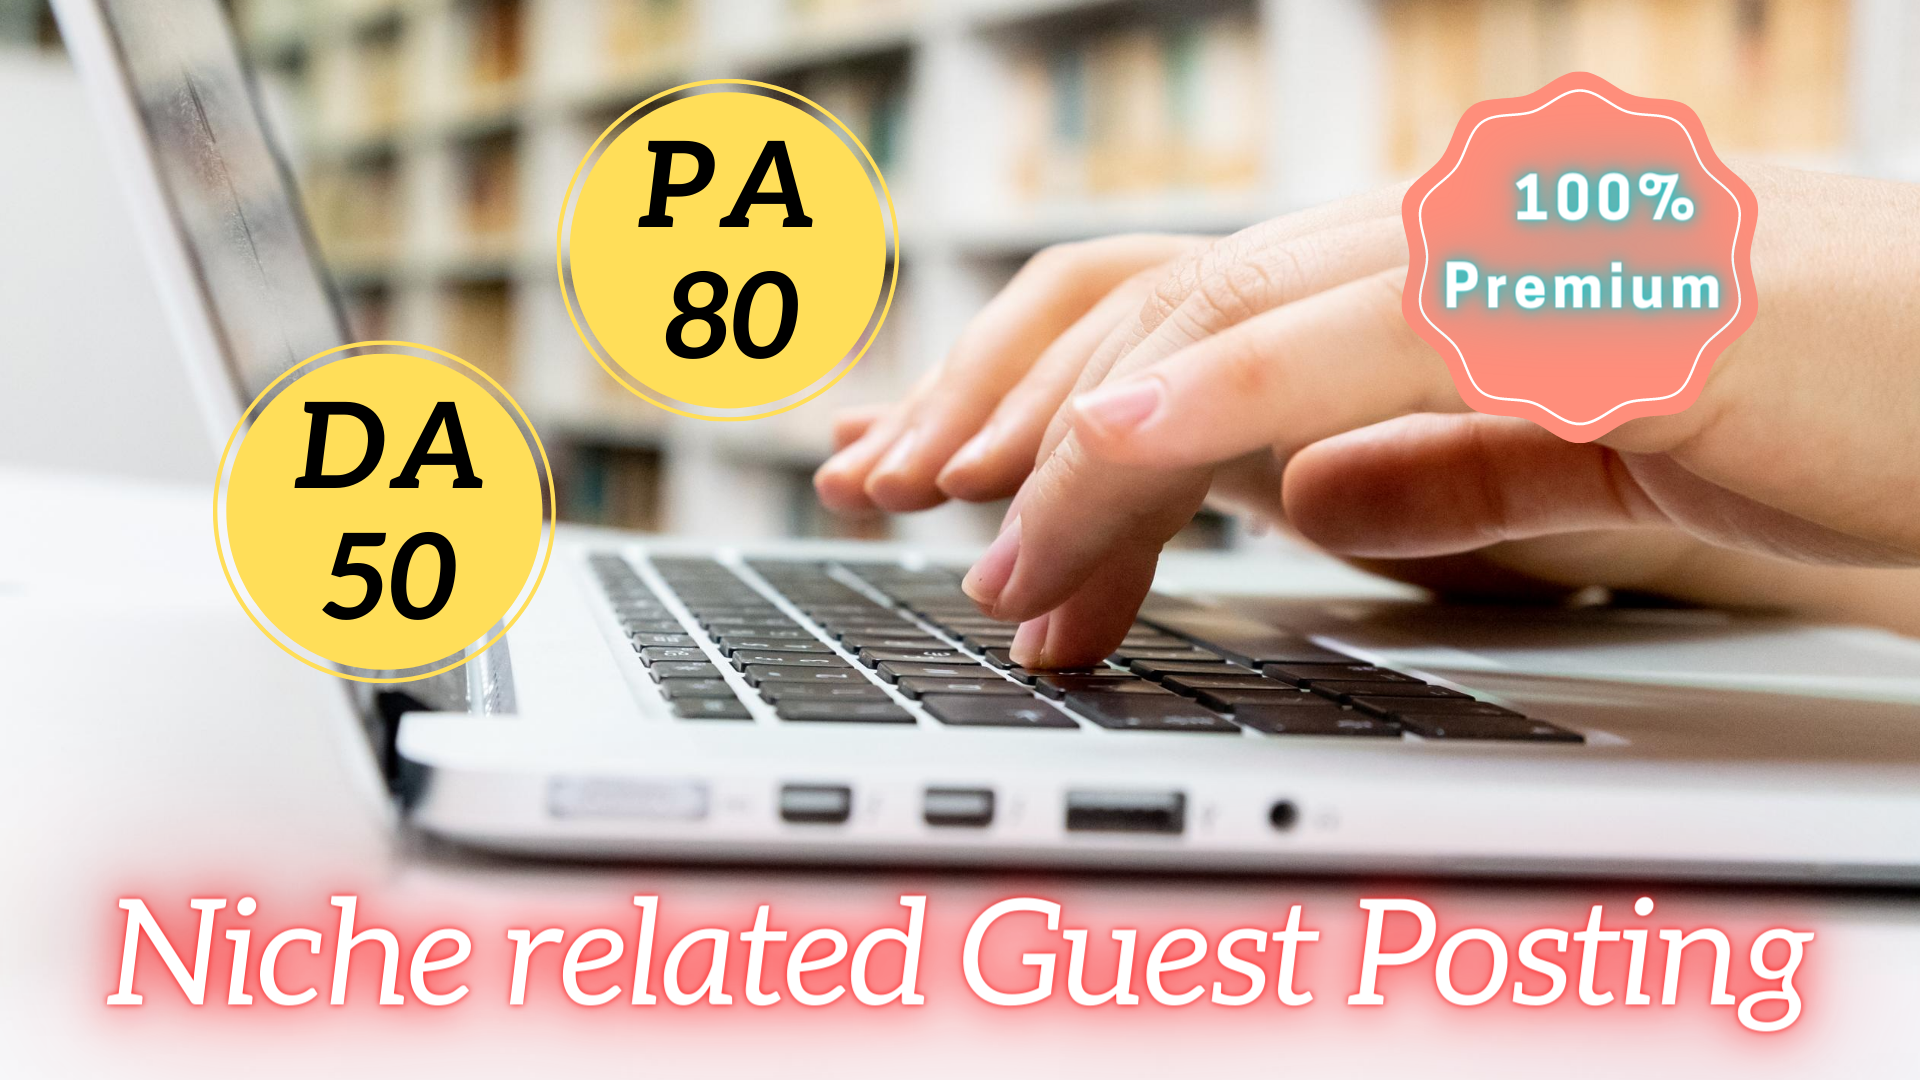 I will do your Niche related Guest Posting on high DA PA websites